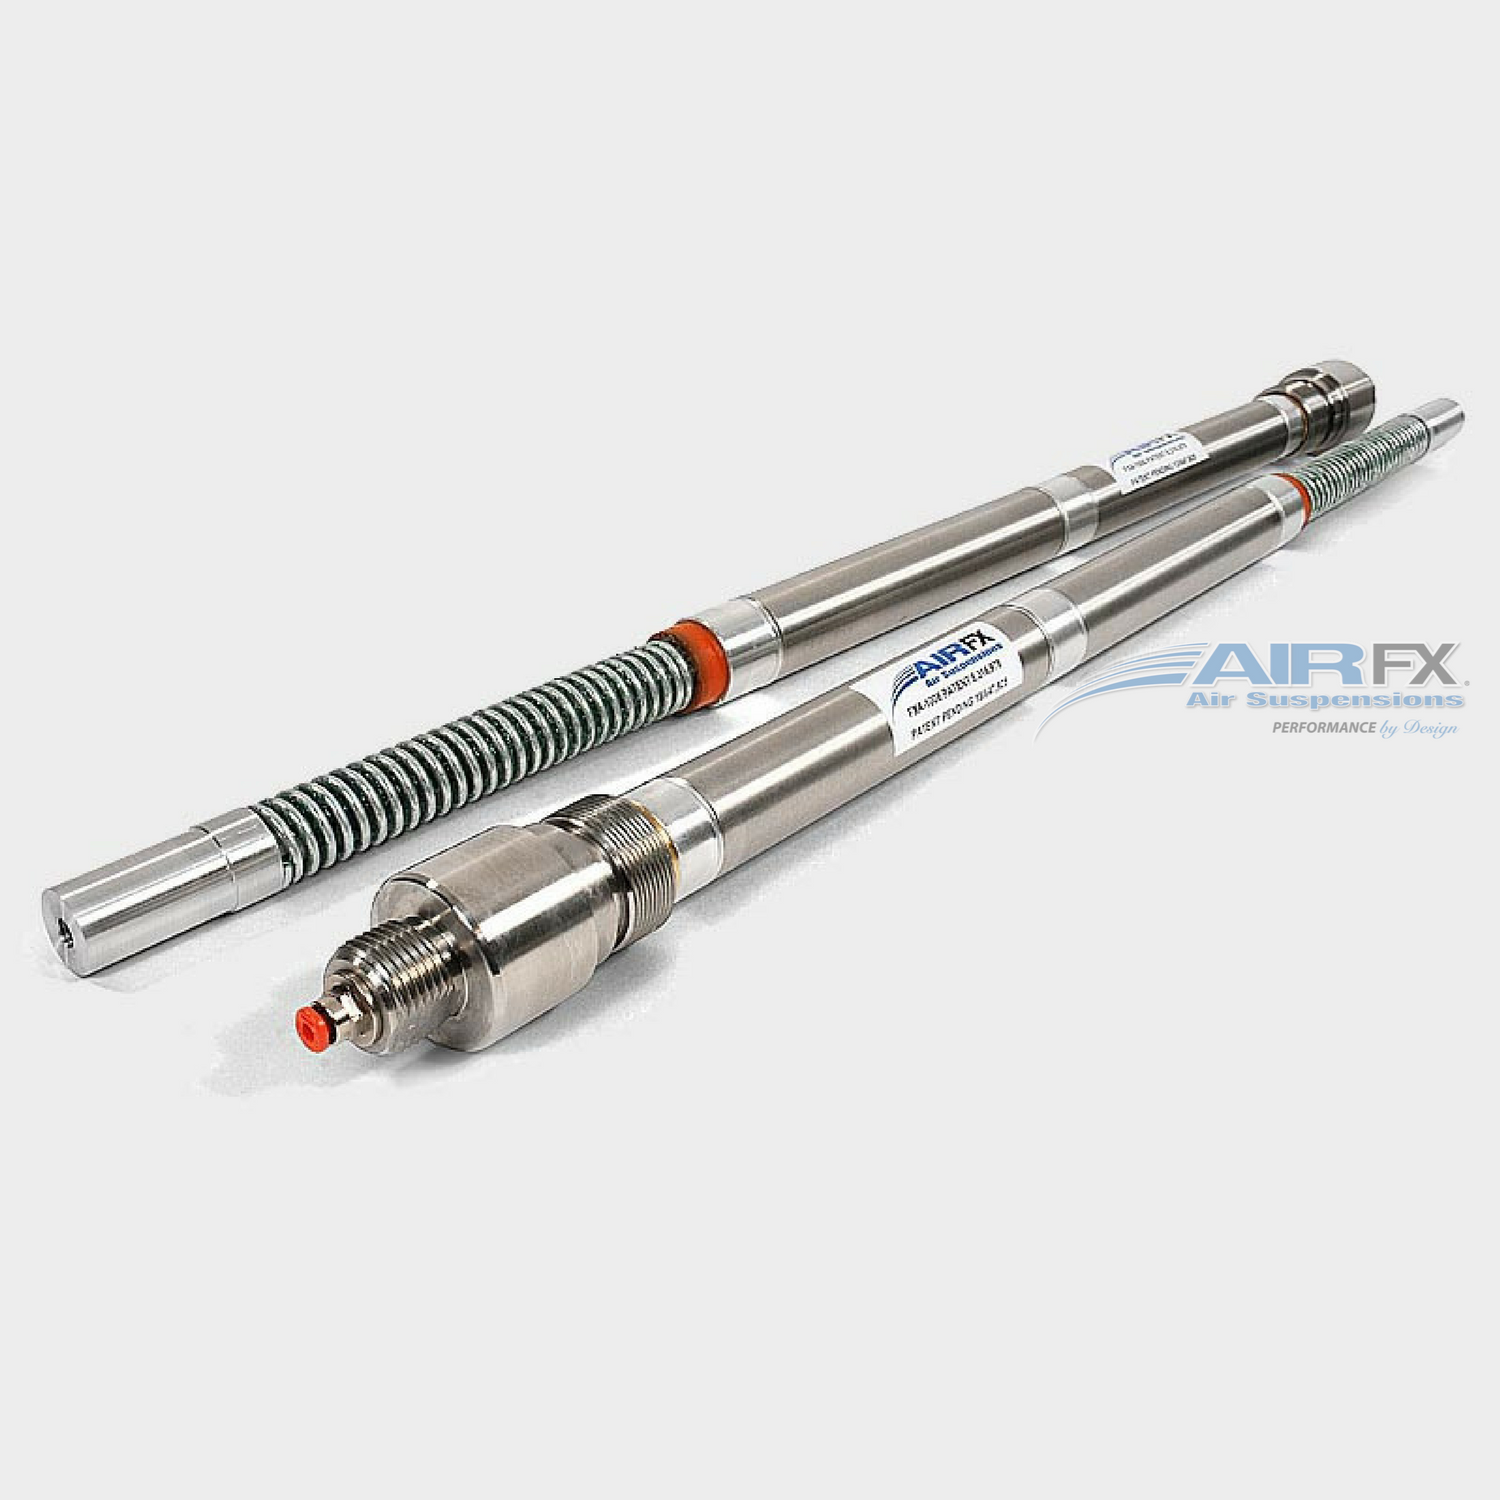 41mm Front Cartridge Pair with HHI for 26'' wheel short neck (FXA-2016-2S) [+$1,370.00]